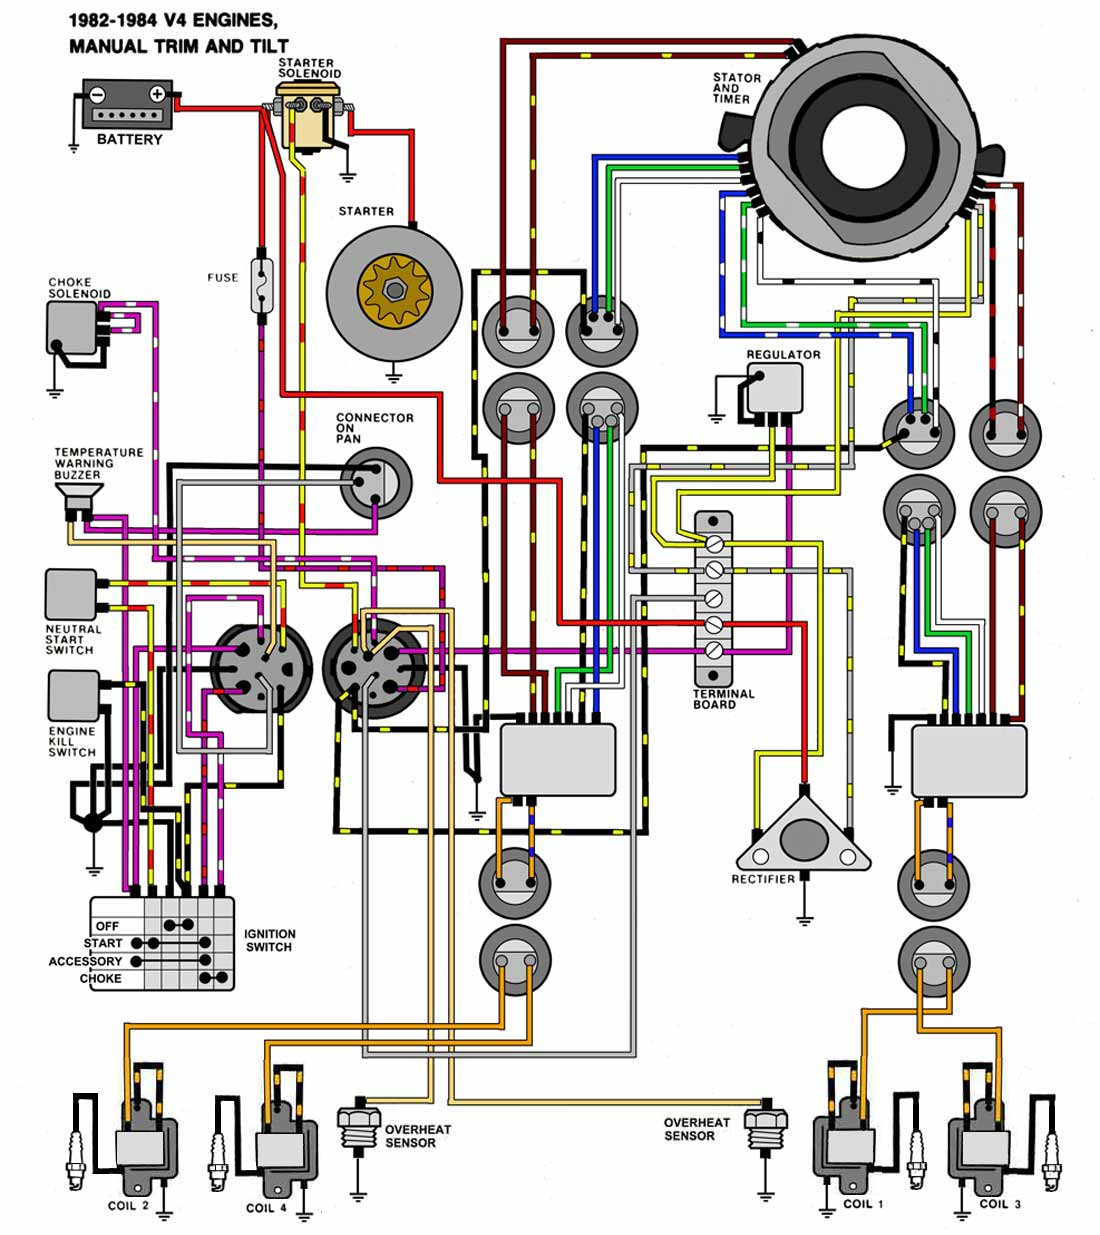 wiring diagram for mariner outboard wiring diagram for omc outboard motor